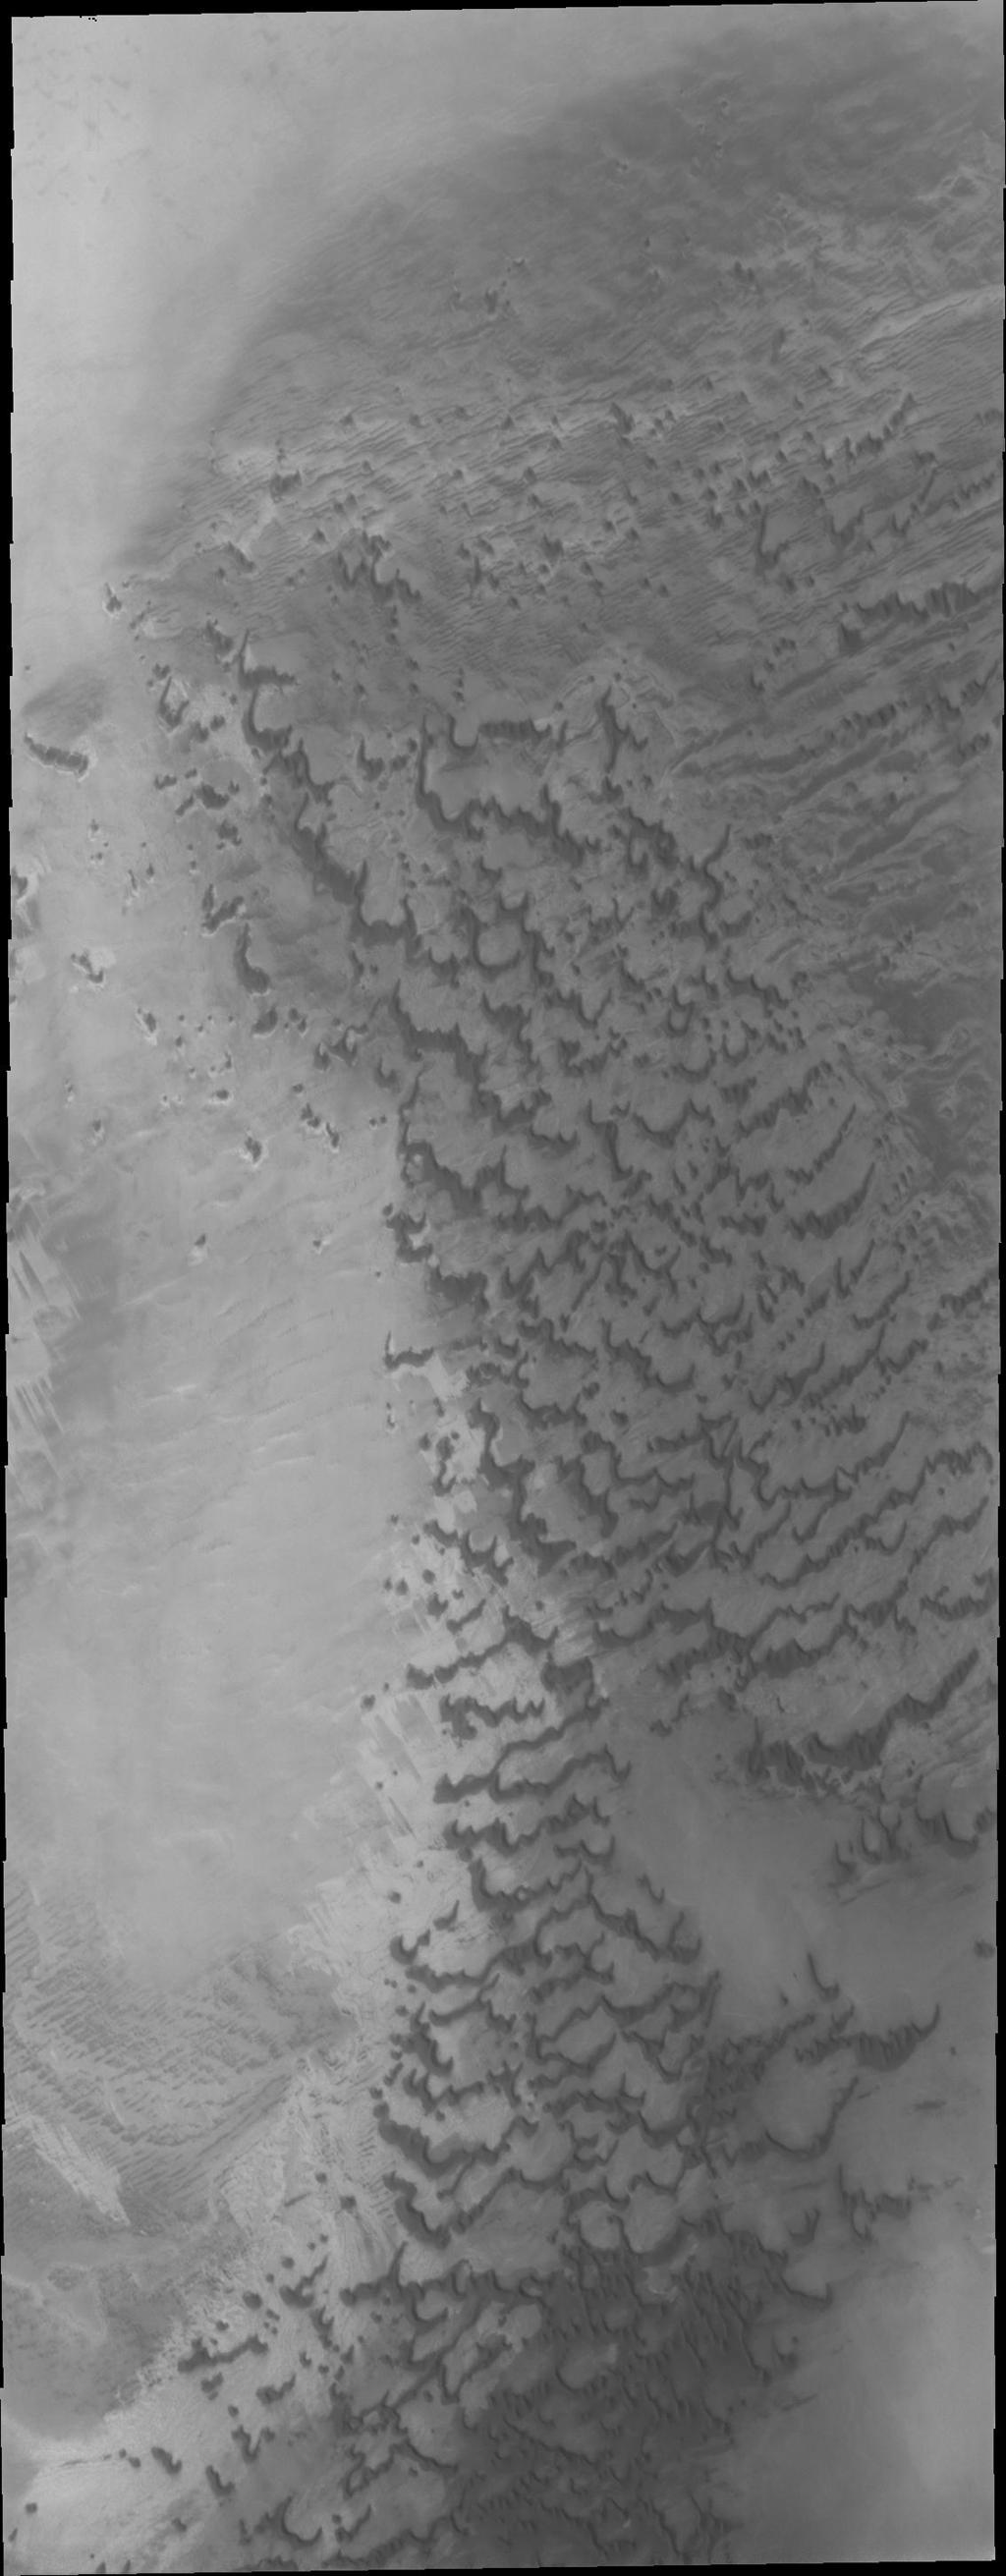 In this image from NASA's Mars Odyssey of dunes near the north pole of Mars it appears that small individual dunes are coalescing into larger dune forms.